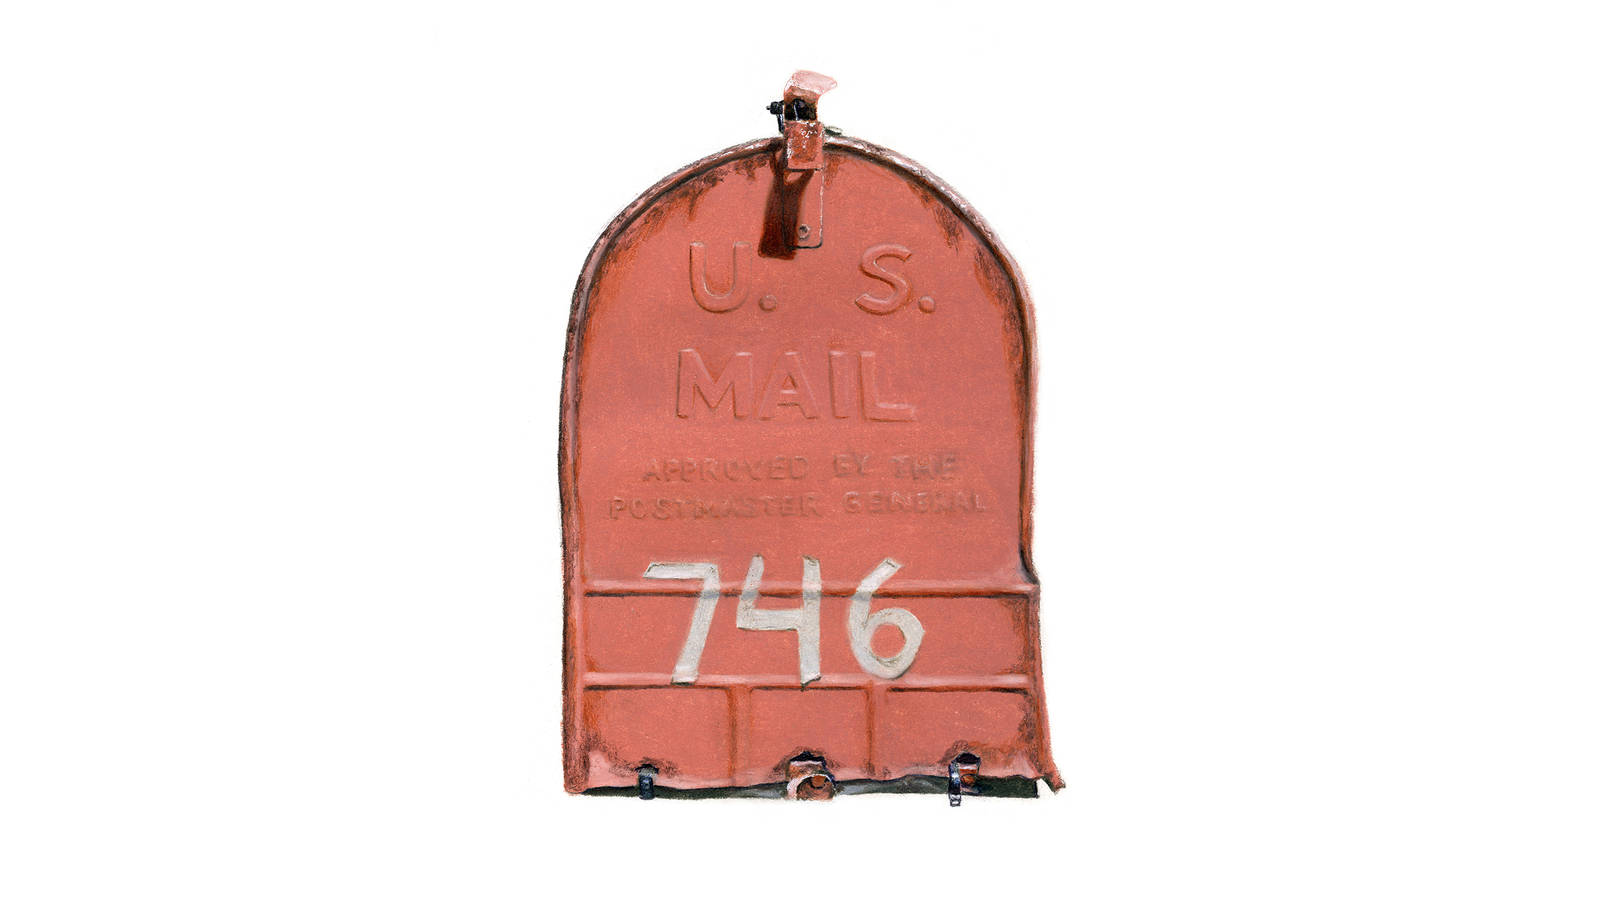 """<h3 style=""""text-align: center; padding: 50px;""""><span class=""""text-Intro-style"""">A mailbox outside the 19th-century caretaker's house Heckel stayed in during her residency at Weir Farm National Historic Site in Connecticut. Colored pencil on paper, 2016.</span></h3>"""